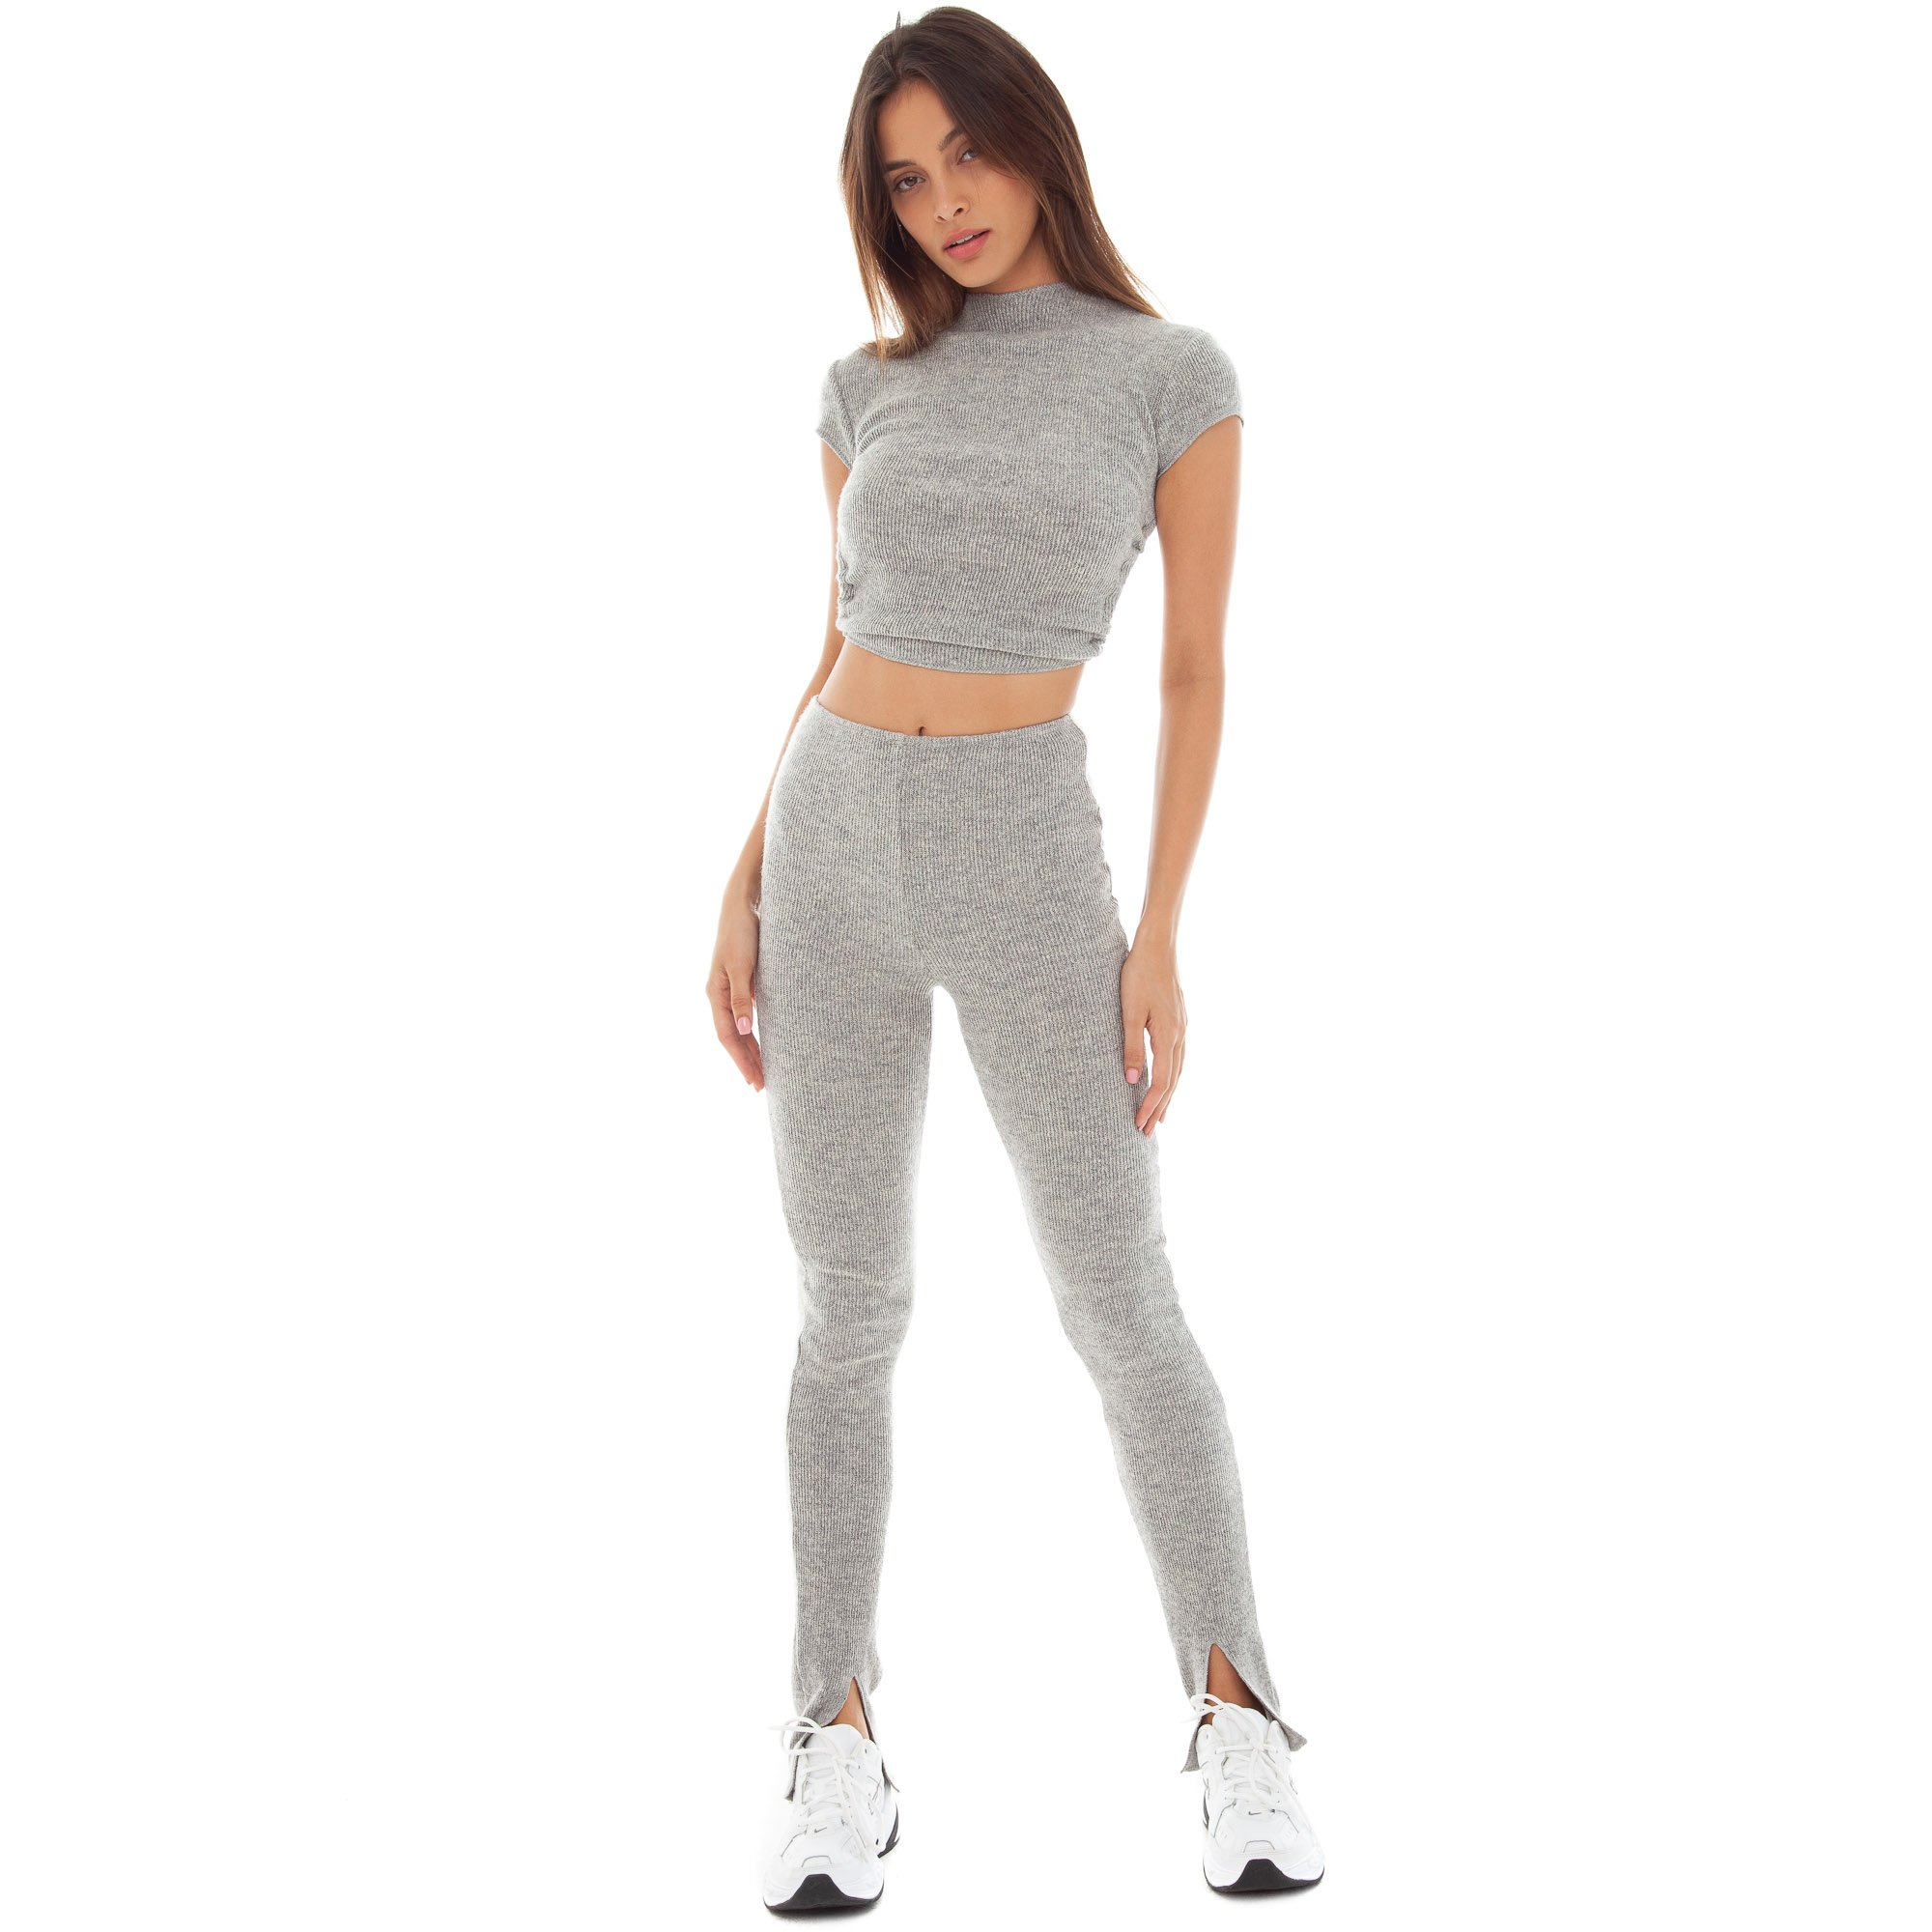 Kendall Jenner wearing a grey basic crop top with short sleeves, cut out and a crew neck